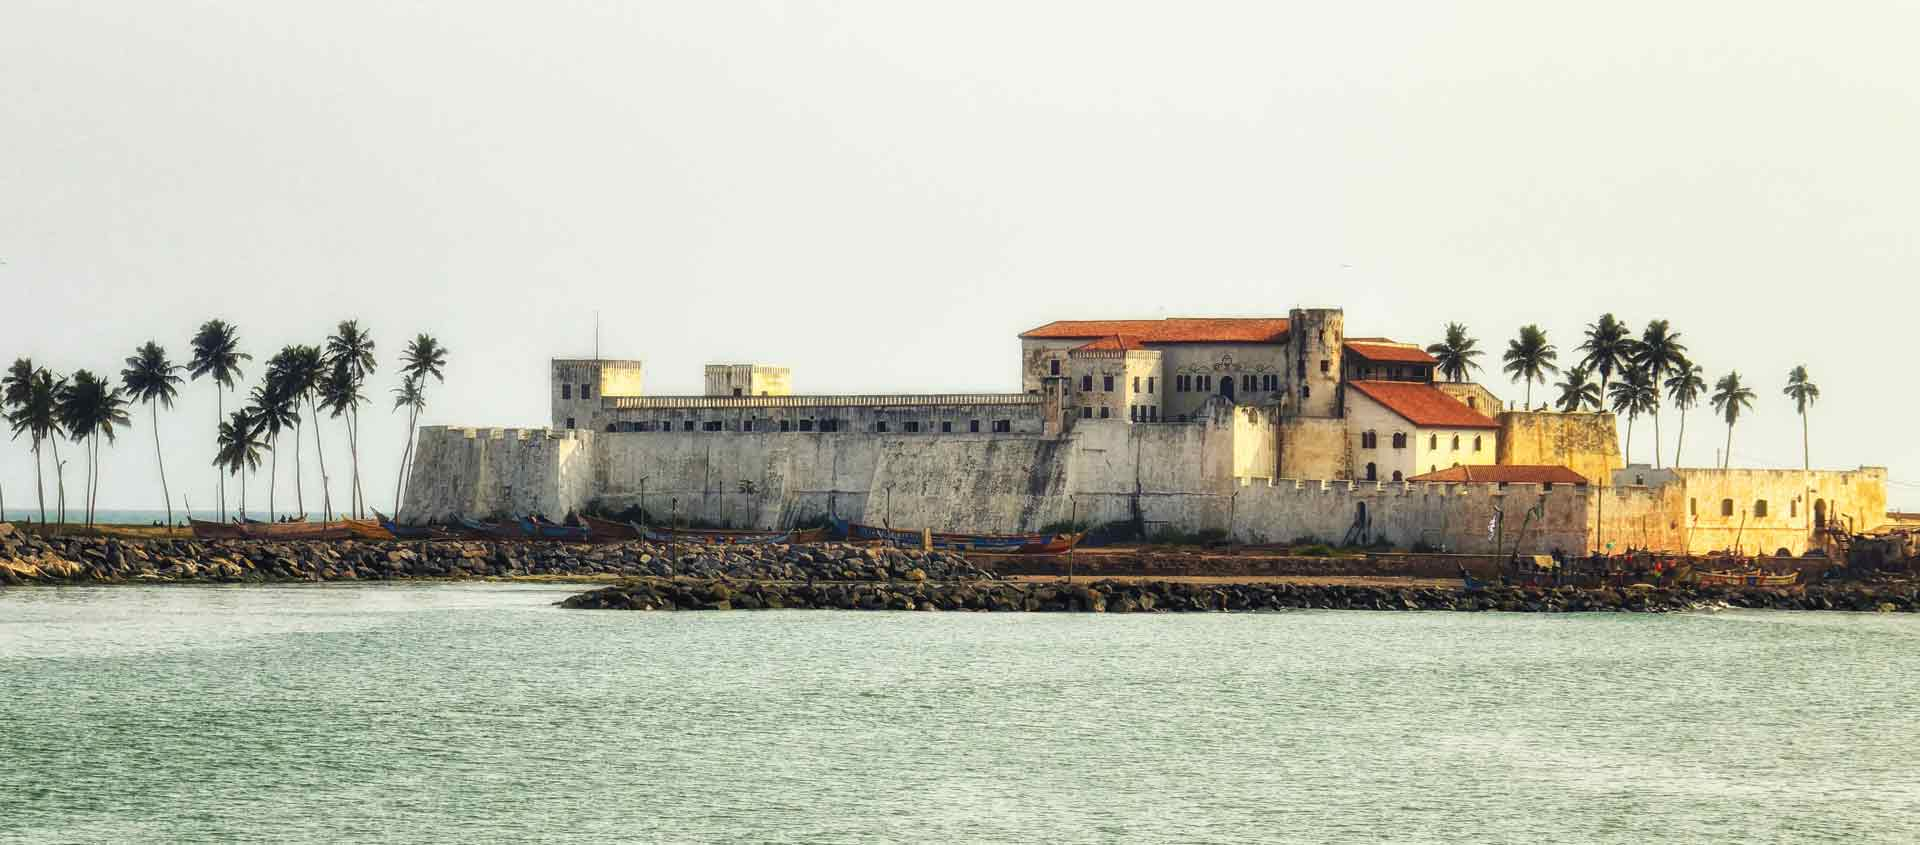 West Africa cruise image of Elmina Castle, Takoradi, Ghana